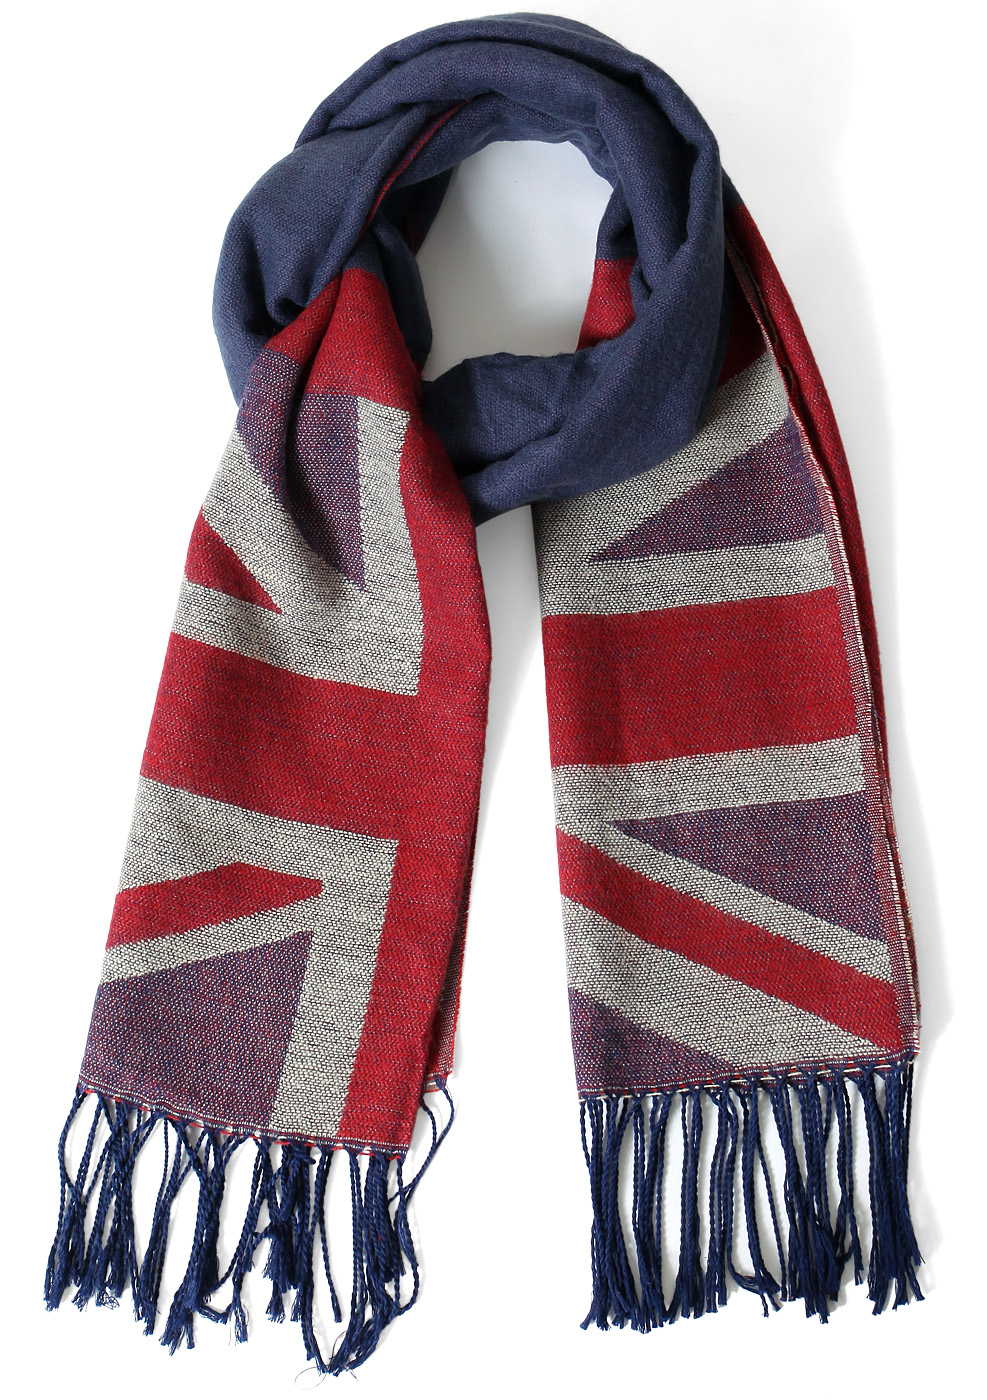 Union Jack Pattern Scarf